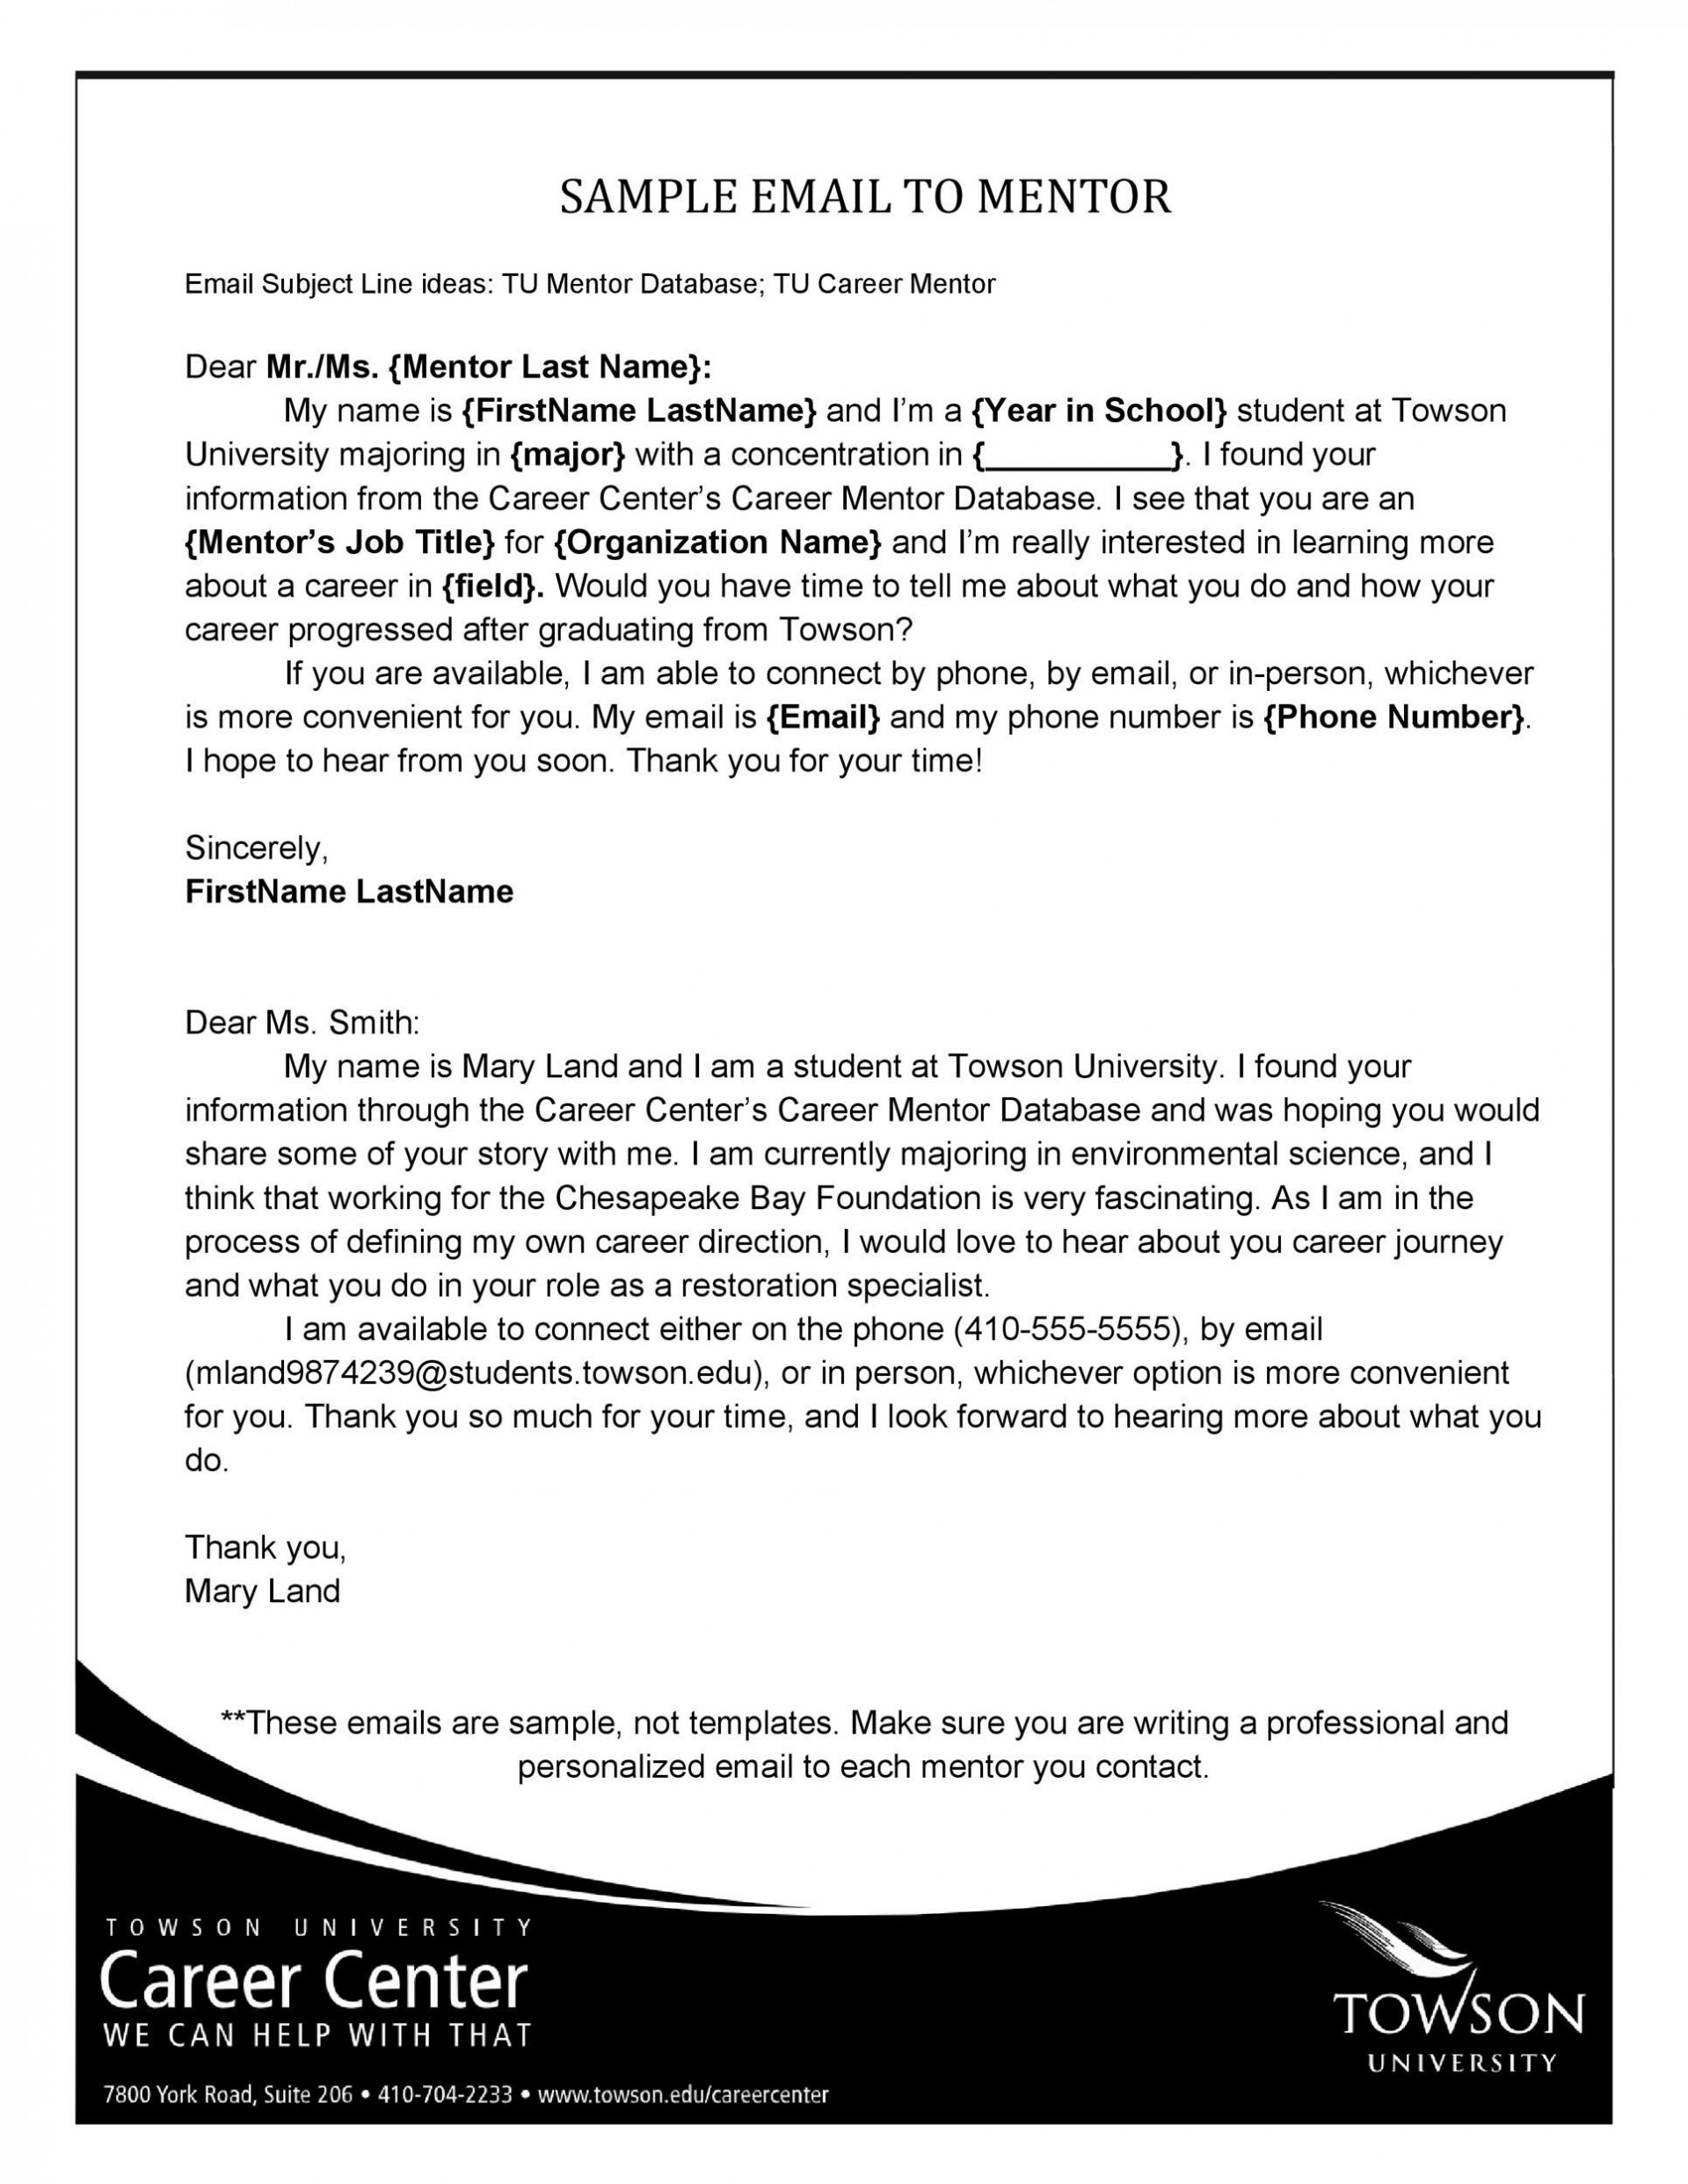 009 Dreaded Professional E Mail Template High Def  Templates Email For Job Application Busines Signature Example Customer Service1920